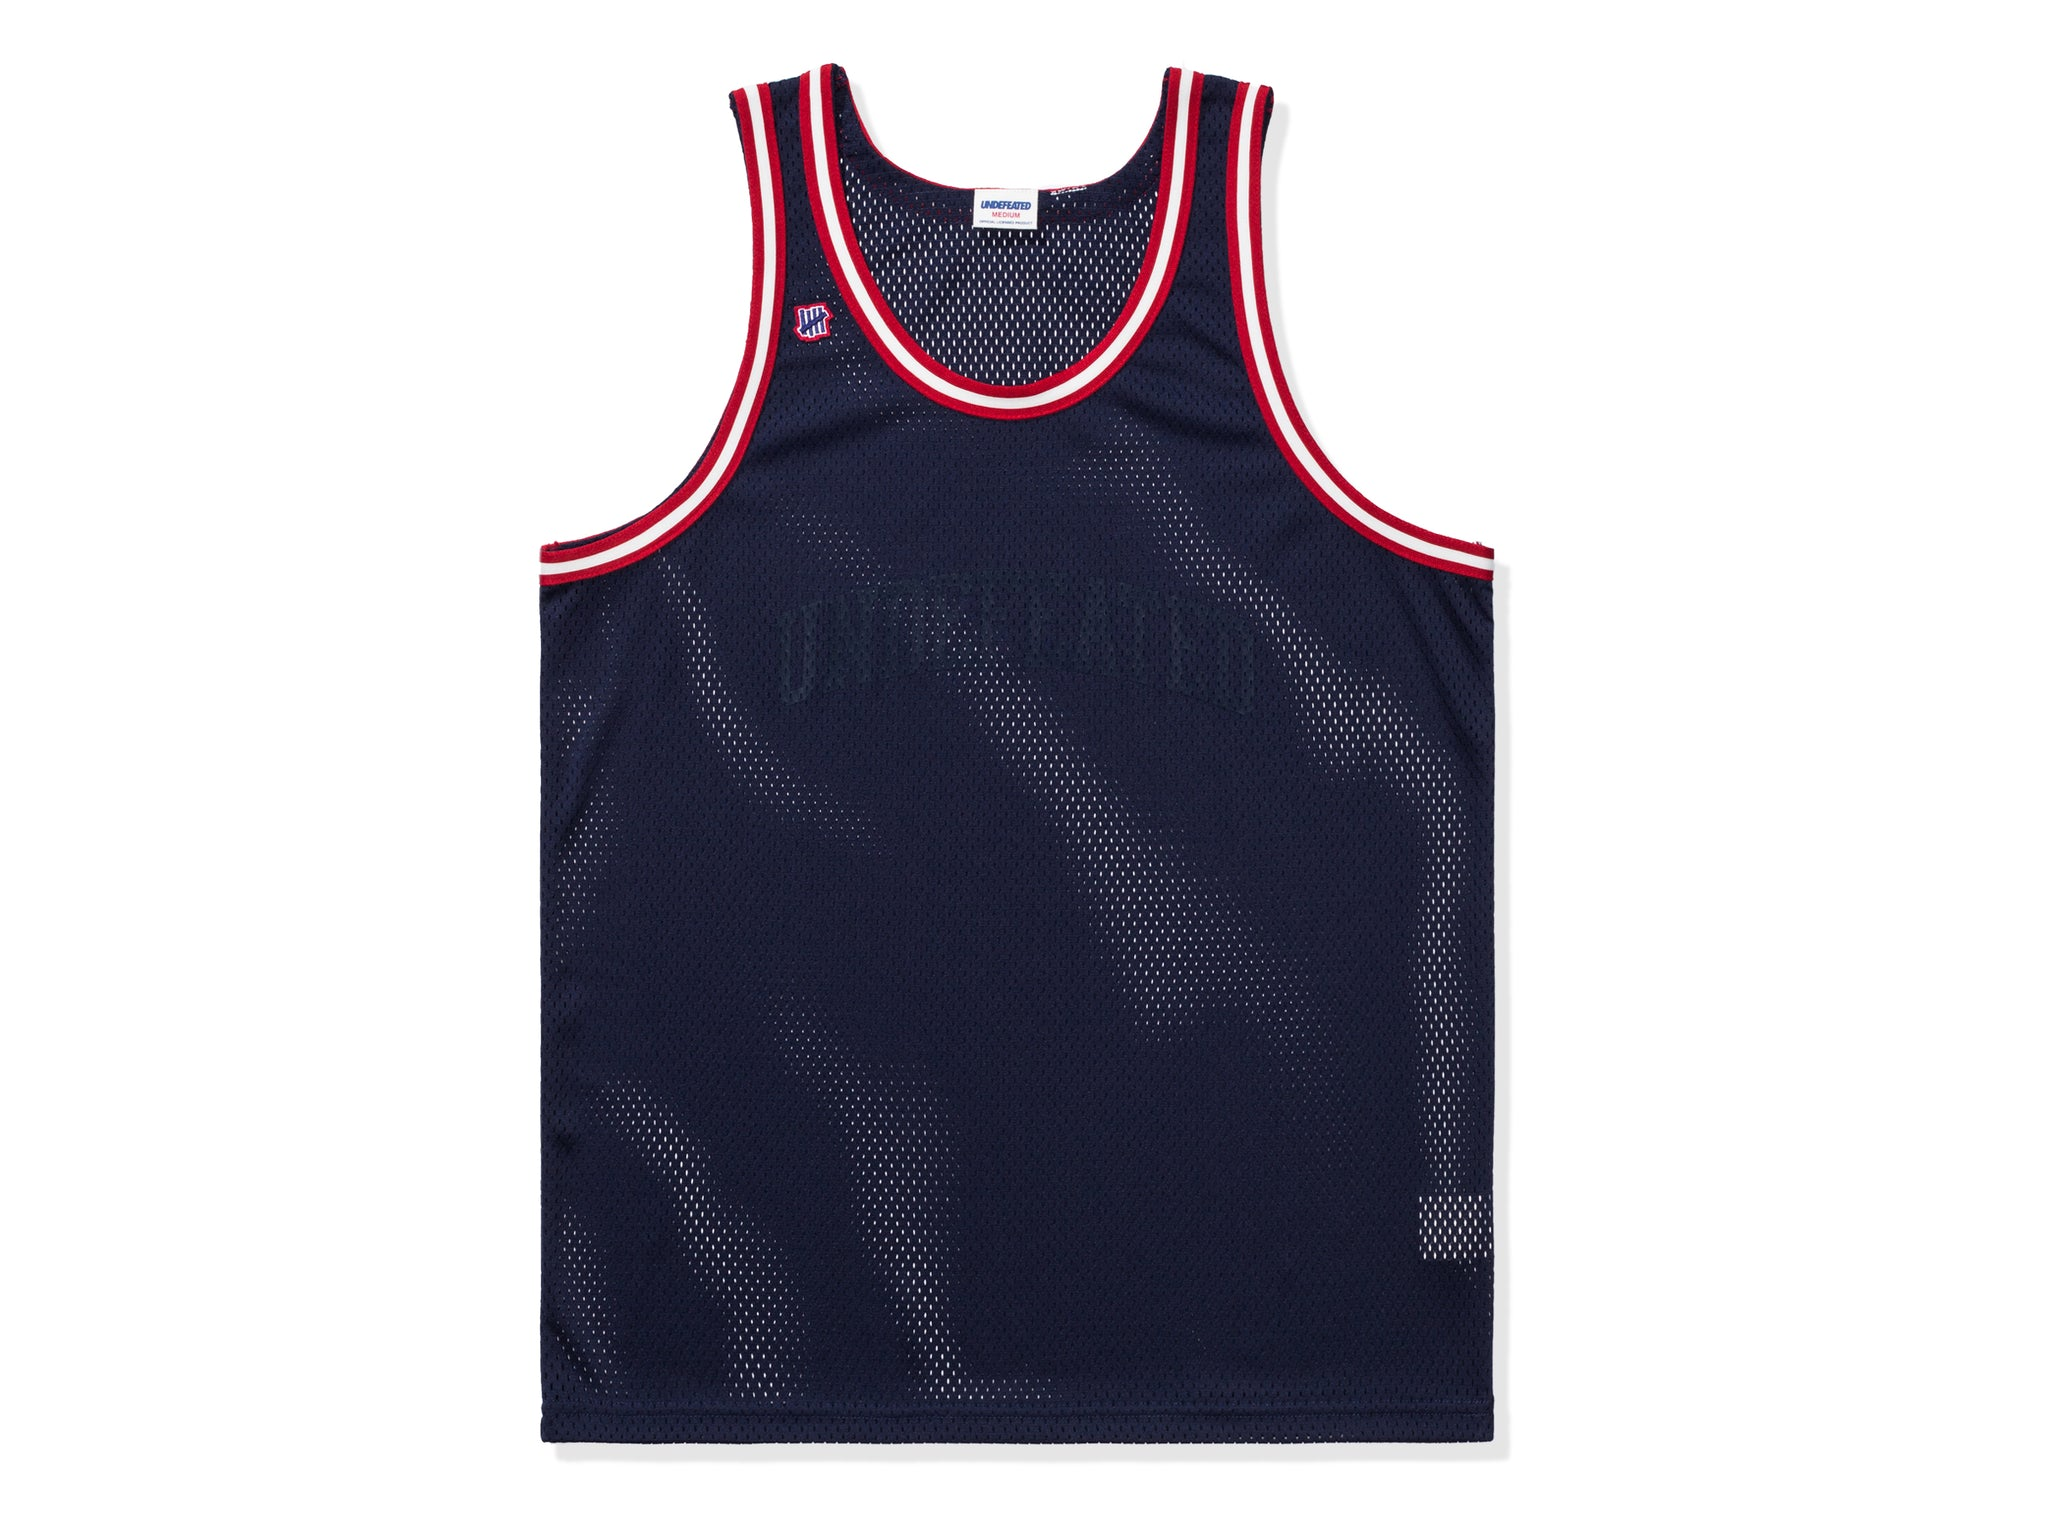 UNDEFEATED BASKETBALL JERSEY